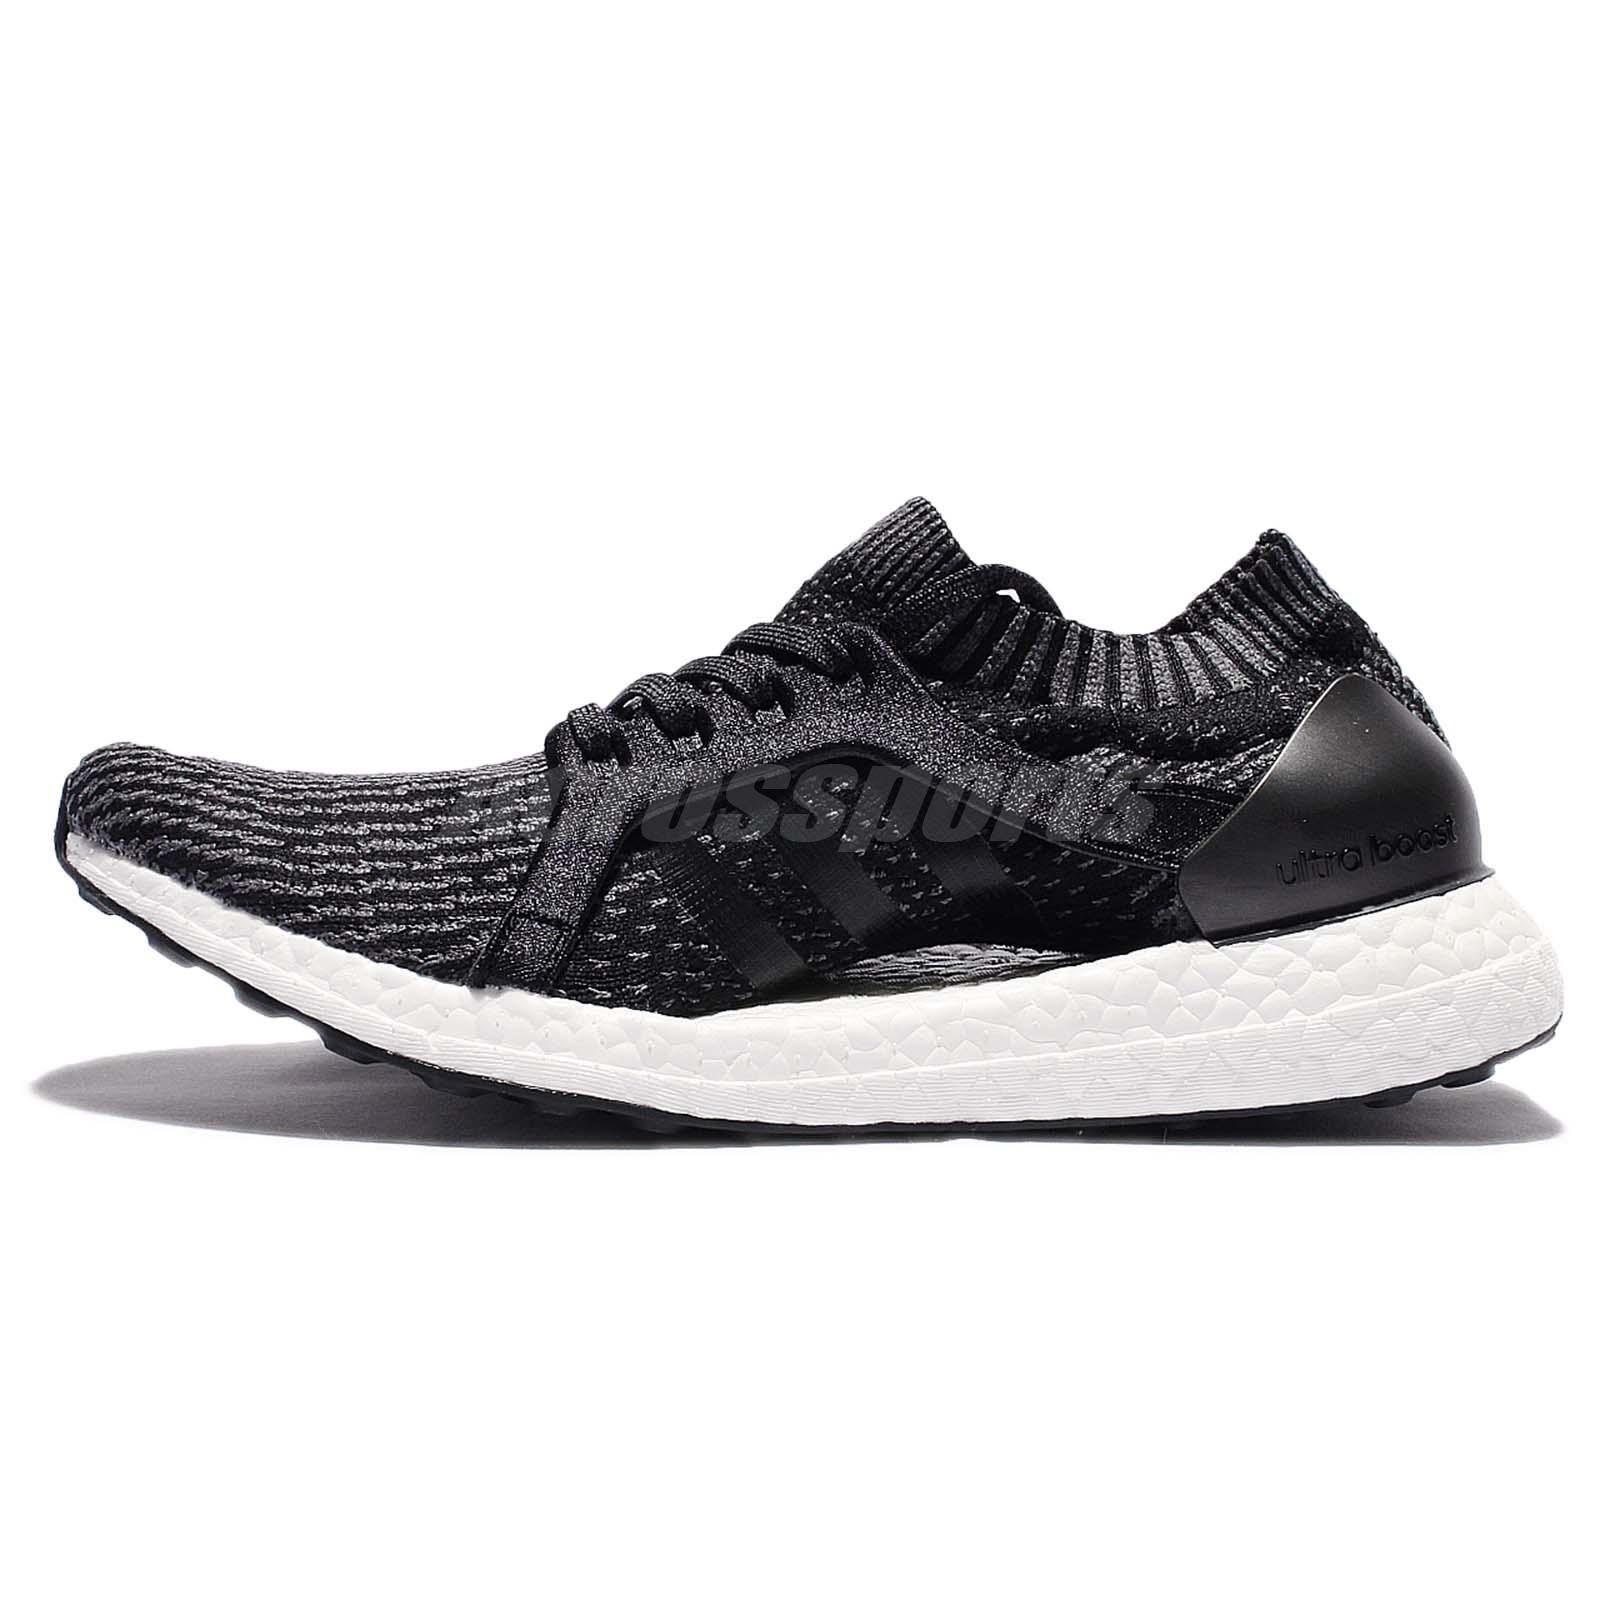 adidas UltraBOOST X Black Grey Torsion Continental Women Running Trainers  BB1696